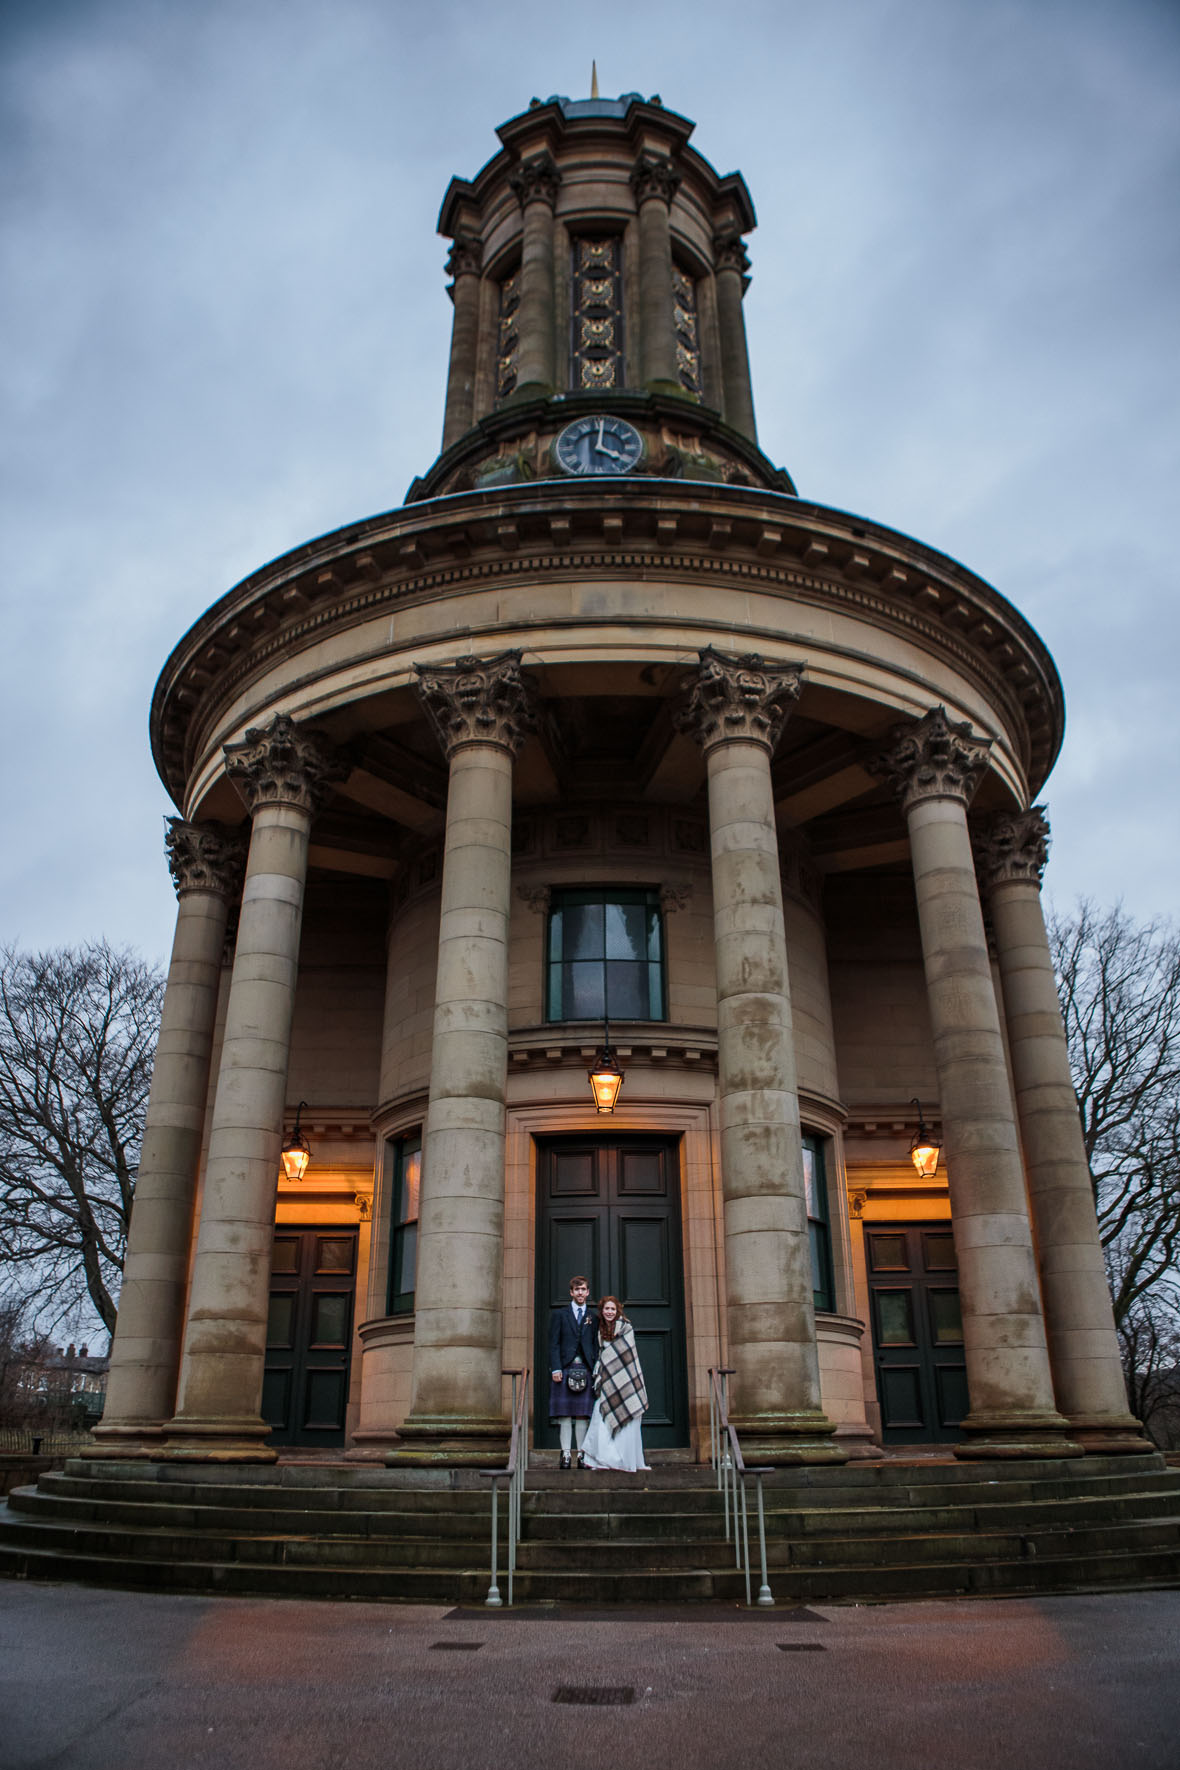 Victoria-hall-saltaire-528